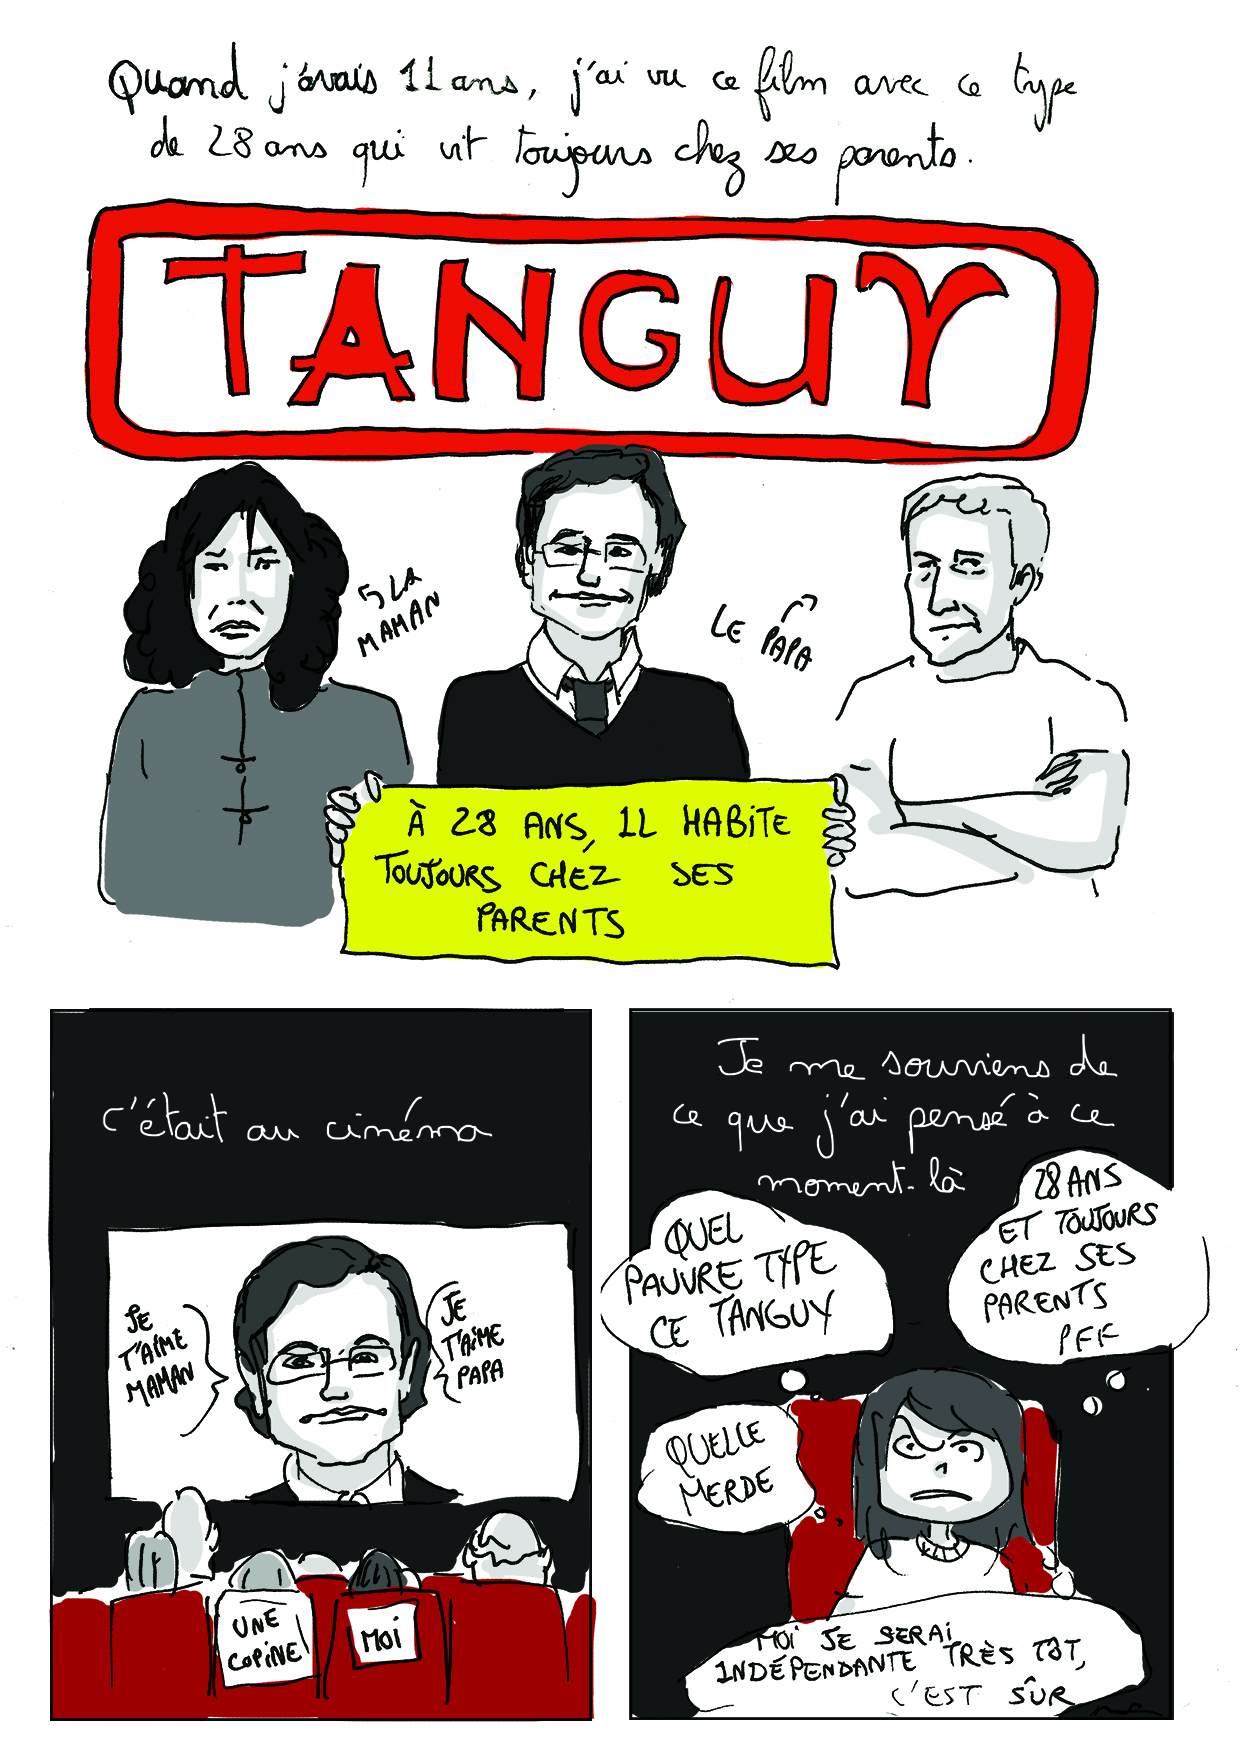 tanguy_page1